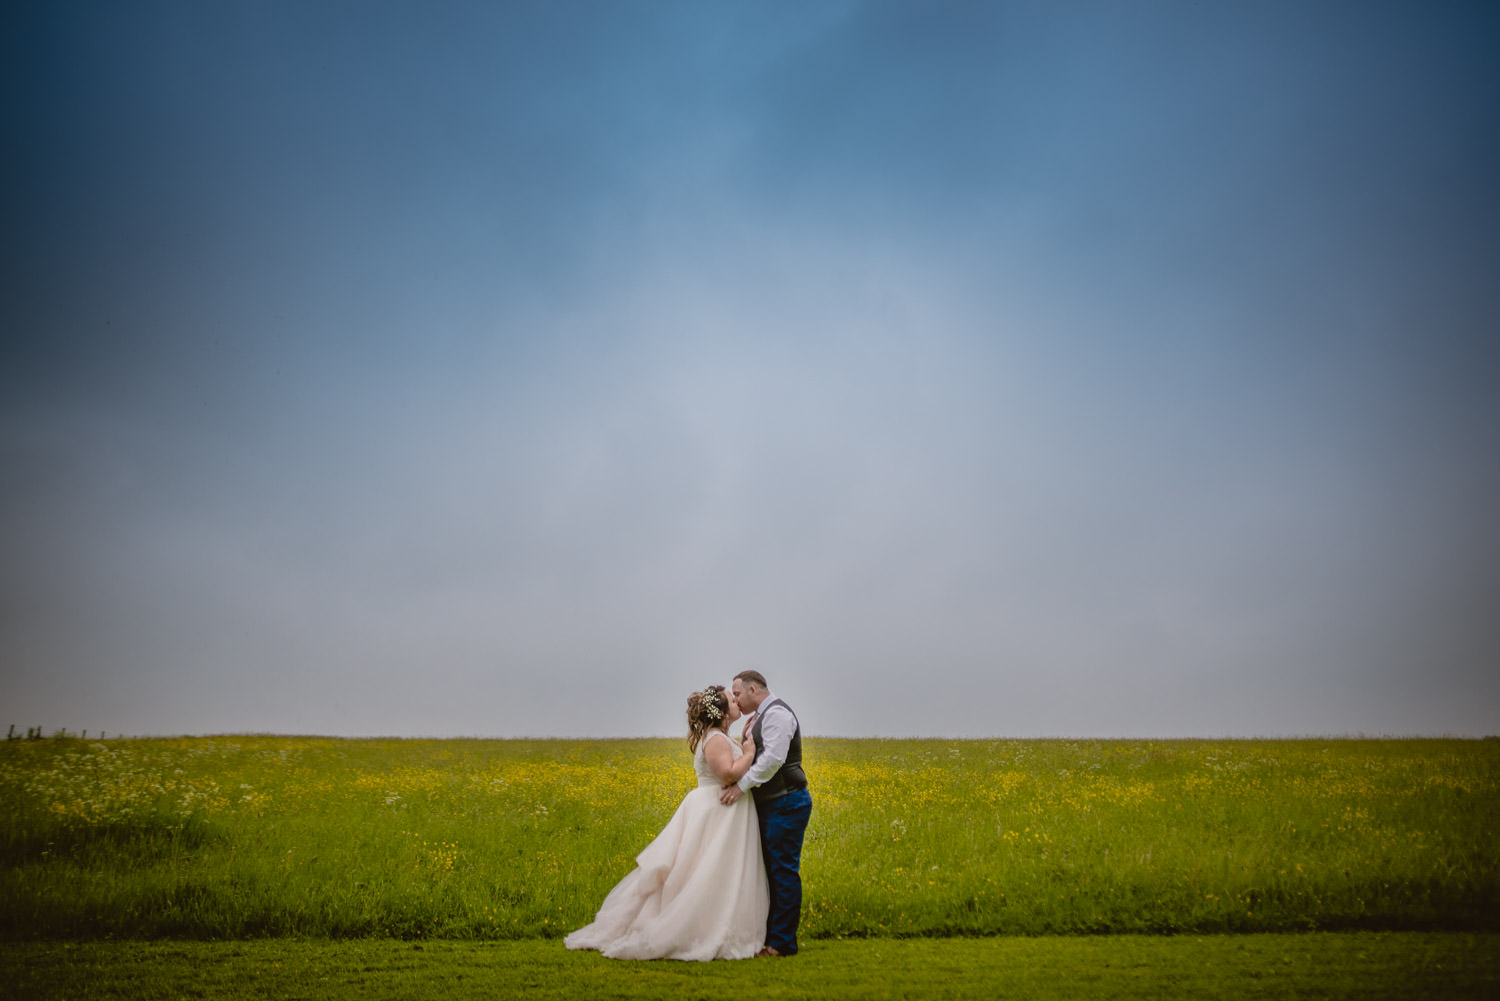 Portrait and creative photo of a married couple kissing at Cripps Barn during their wedding day